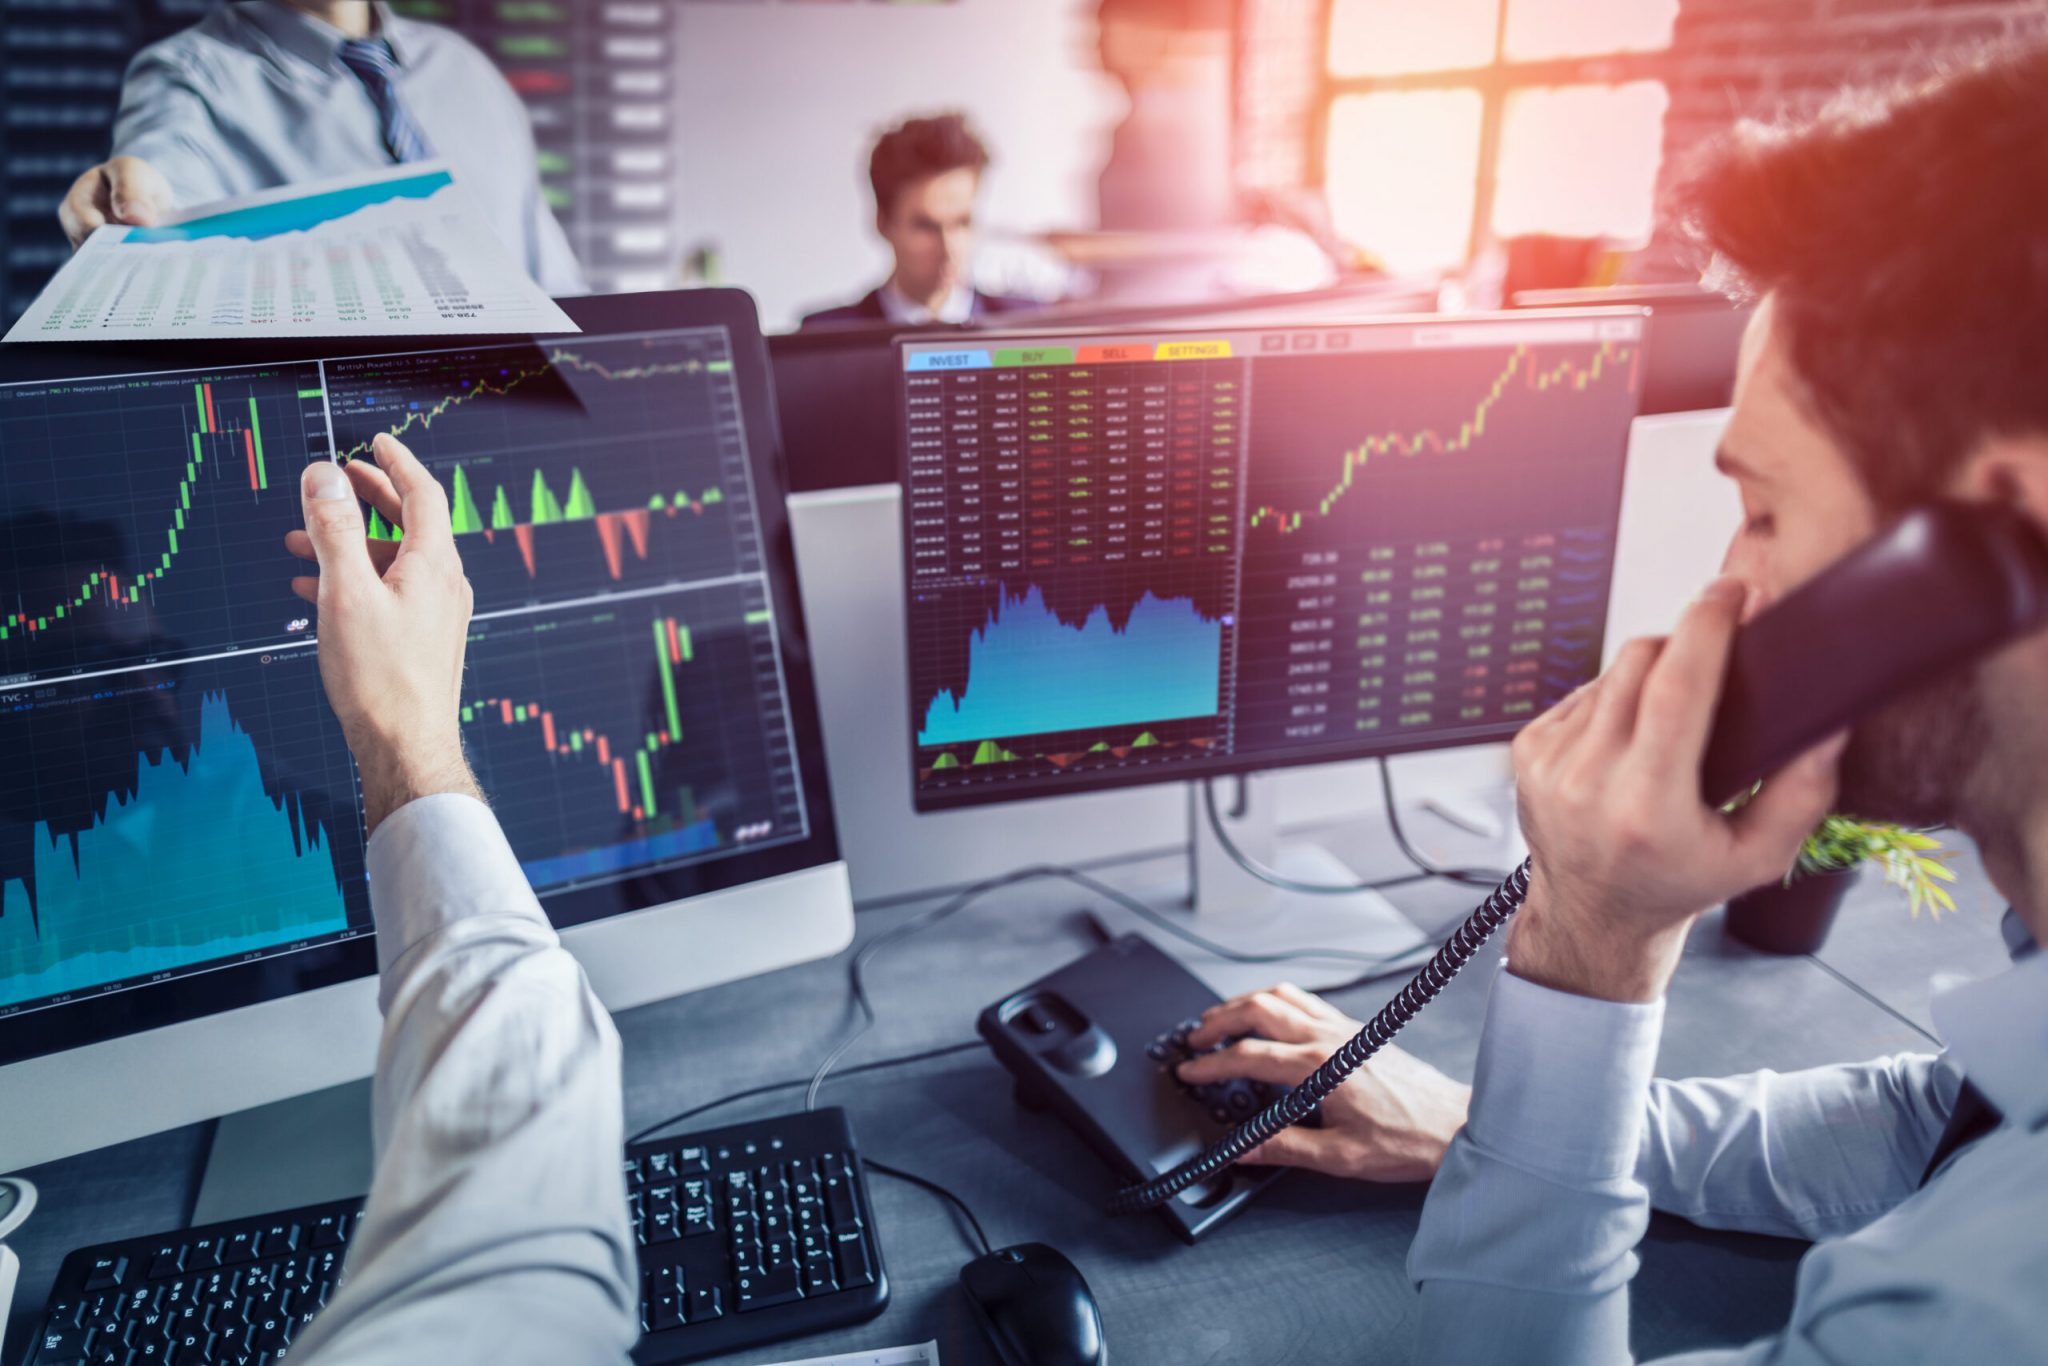 Business team deal on a stock exchange. Stock traders concept